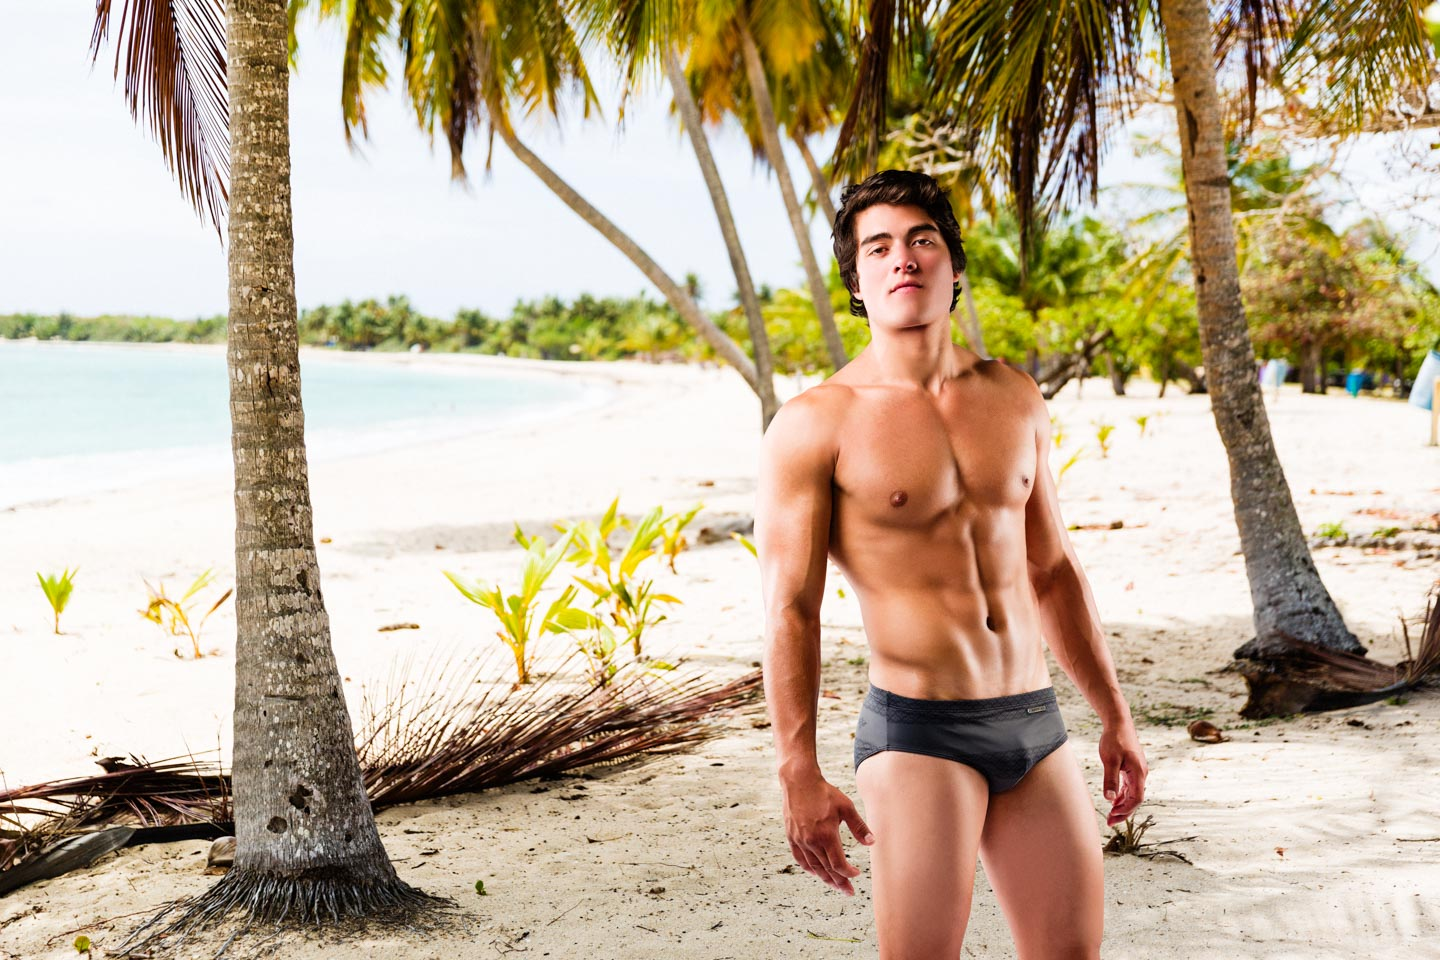 A swimsuit model added to a beach in Puerto Rico